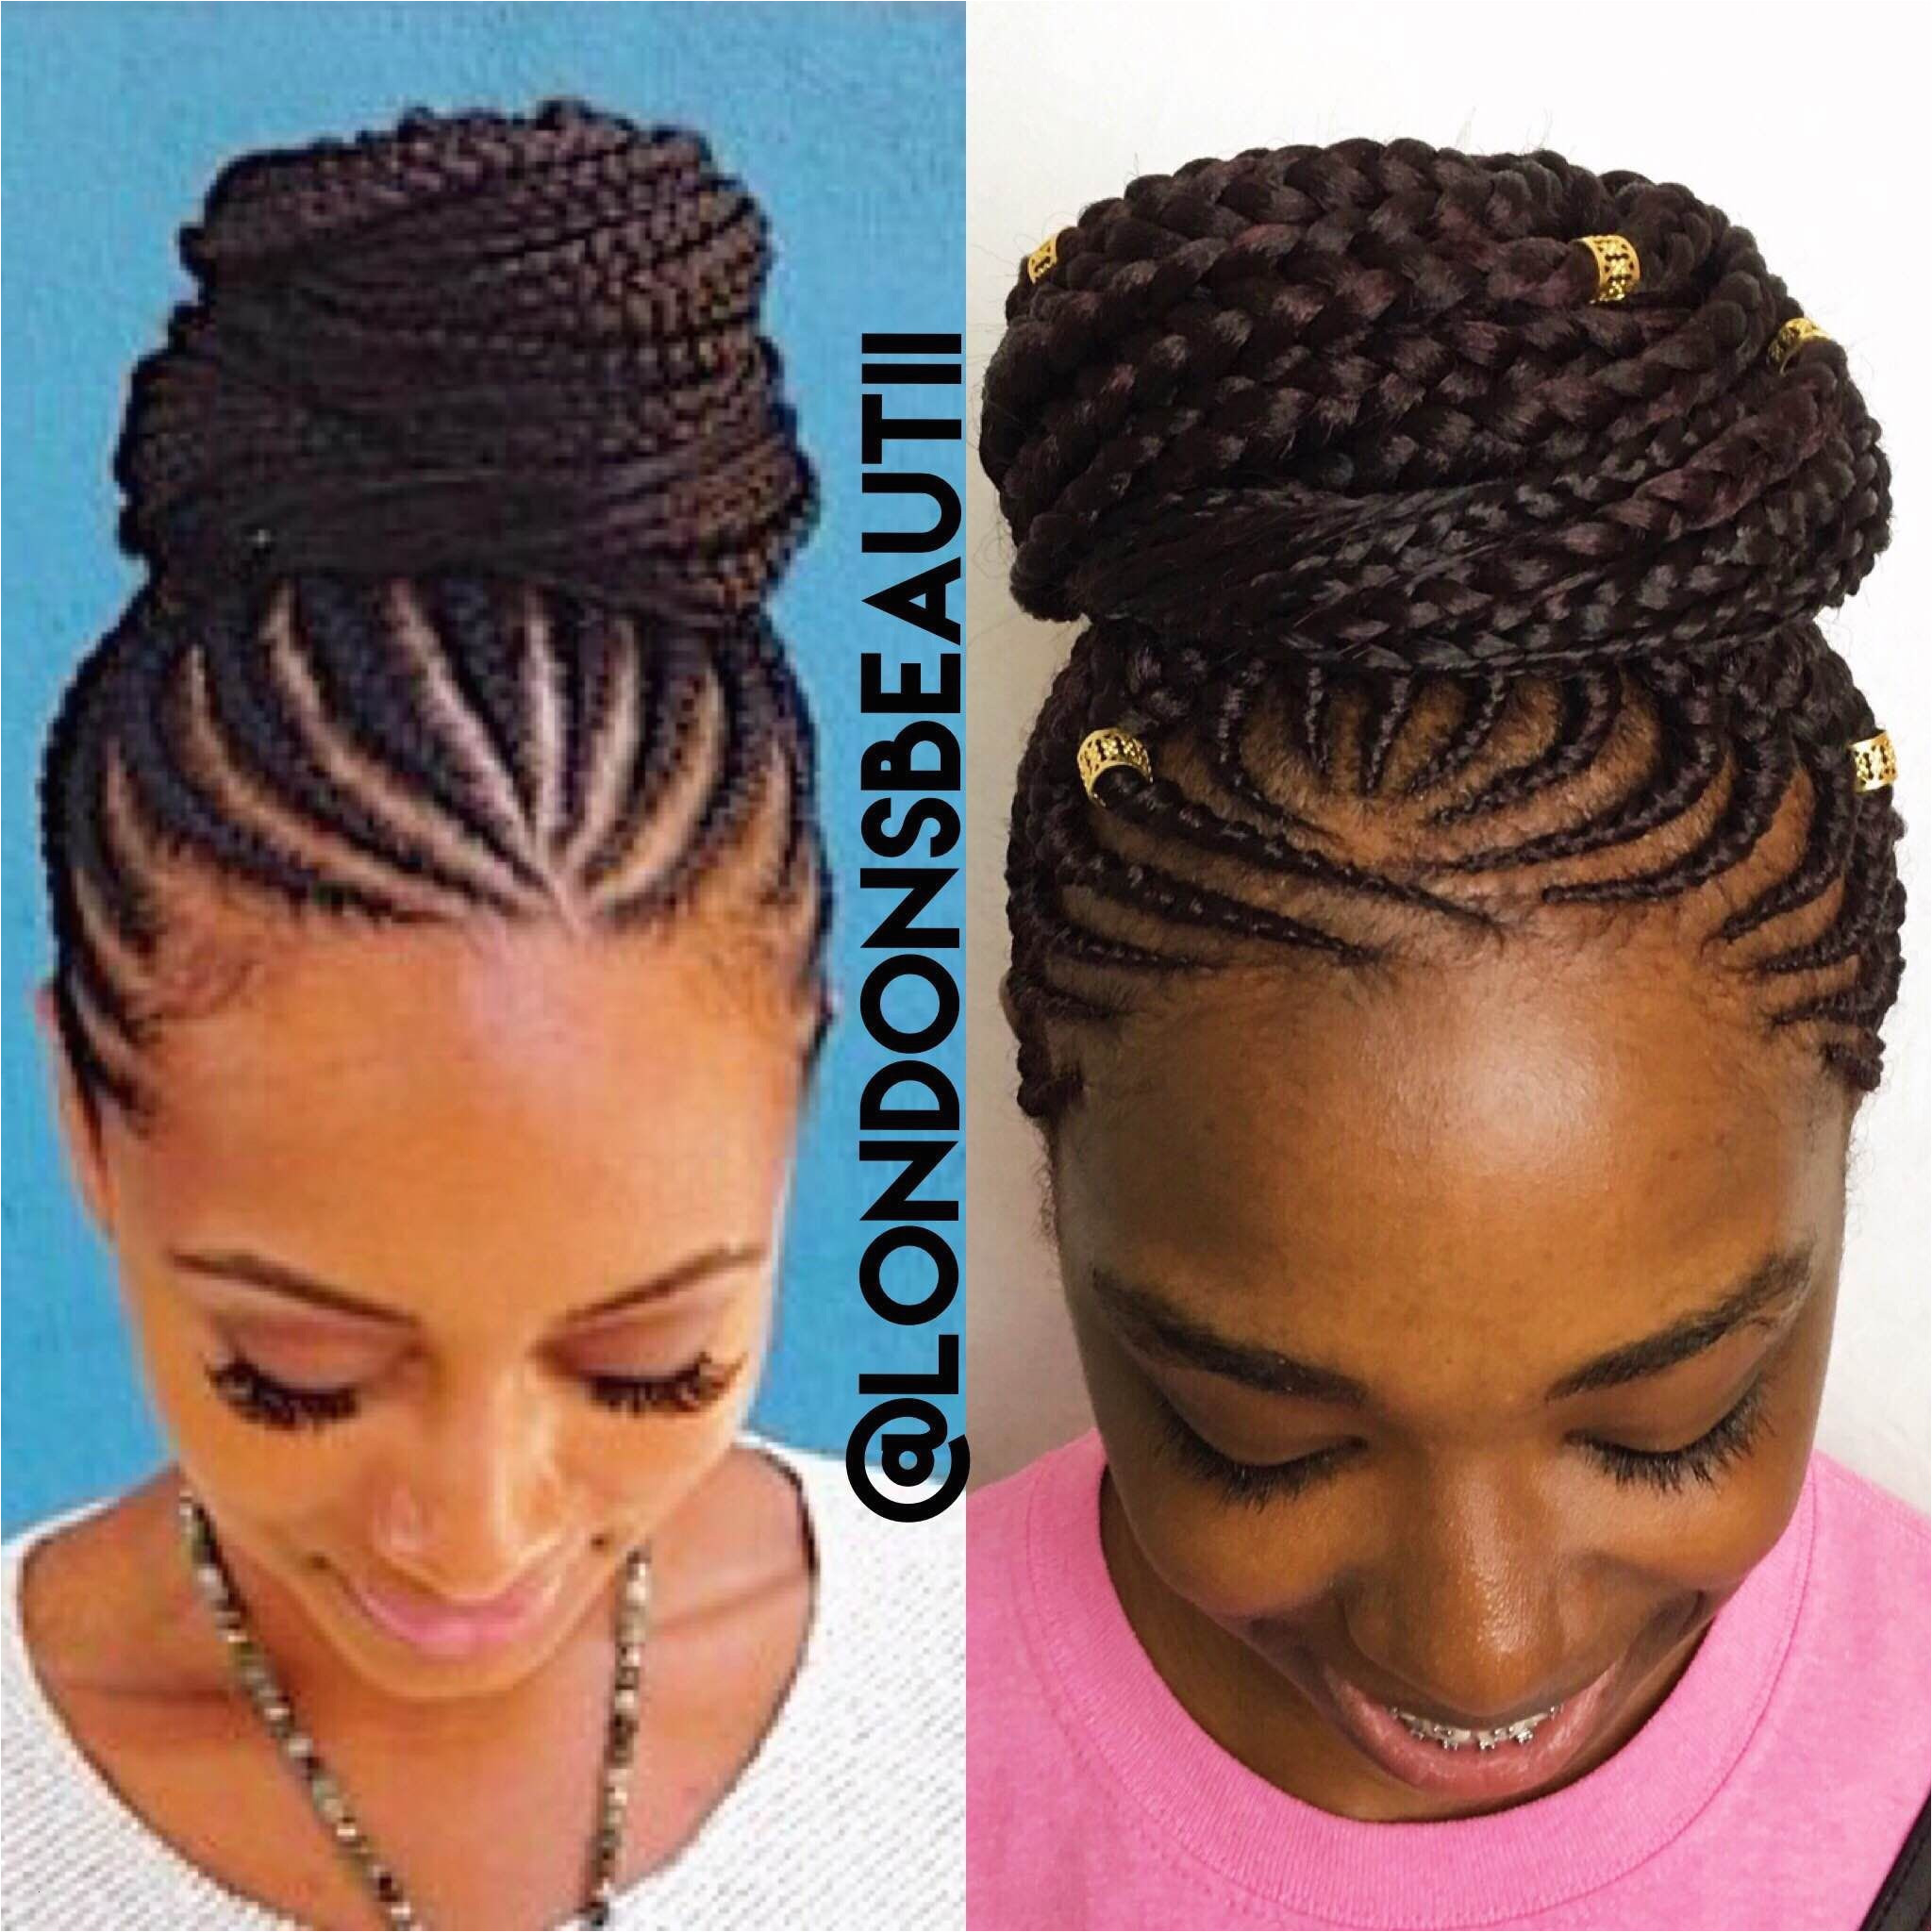 Cute Little Girl Natural Hairstyles Awesome Vacation Hairstyles for Natural Hair Image New Cute Vacation